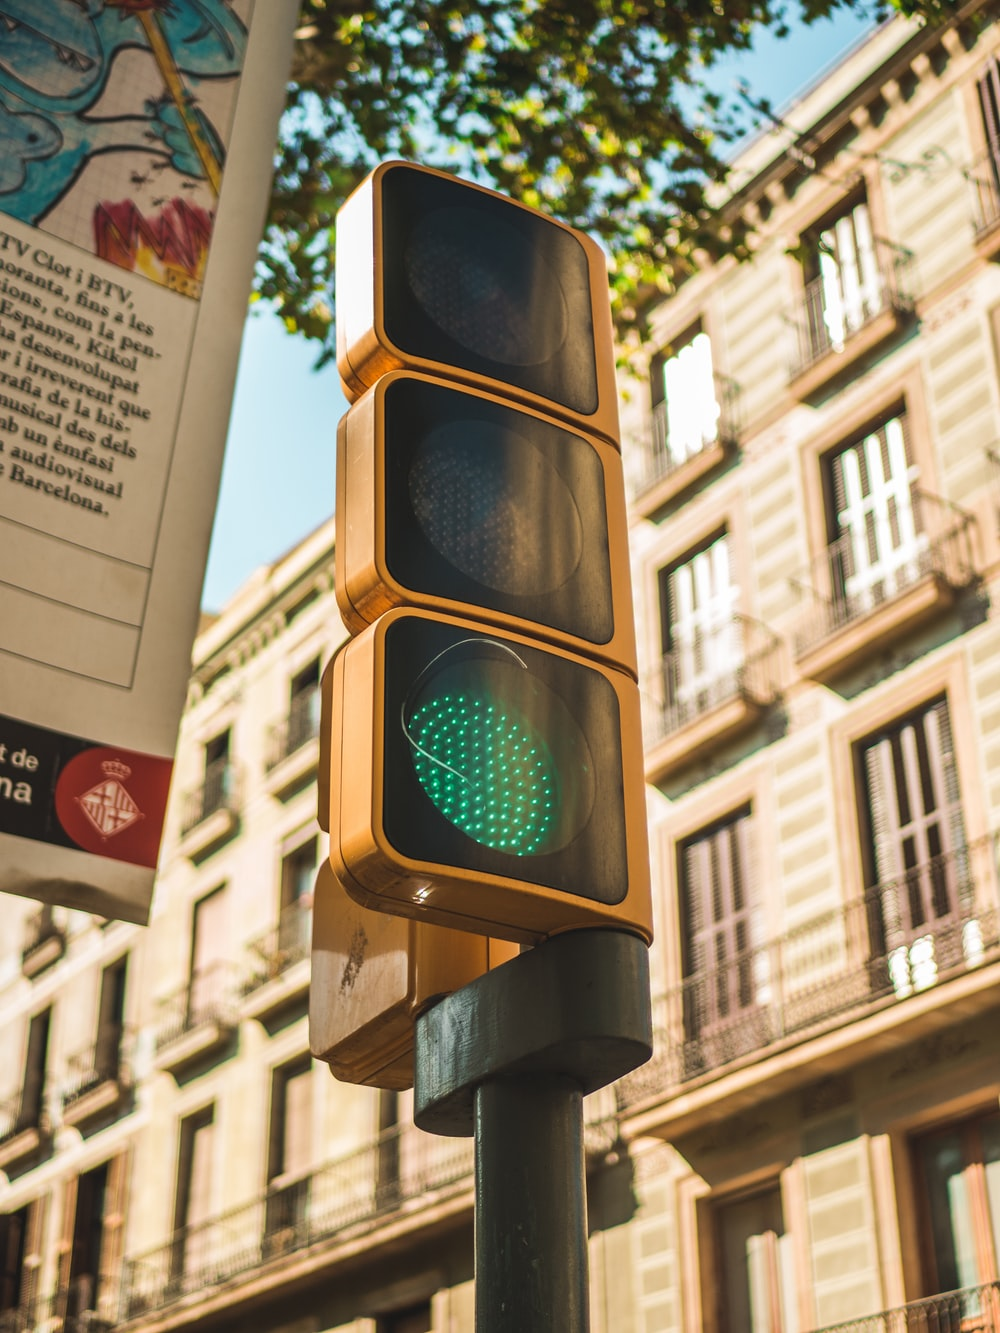 traffic light displaying green light